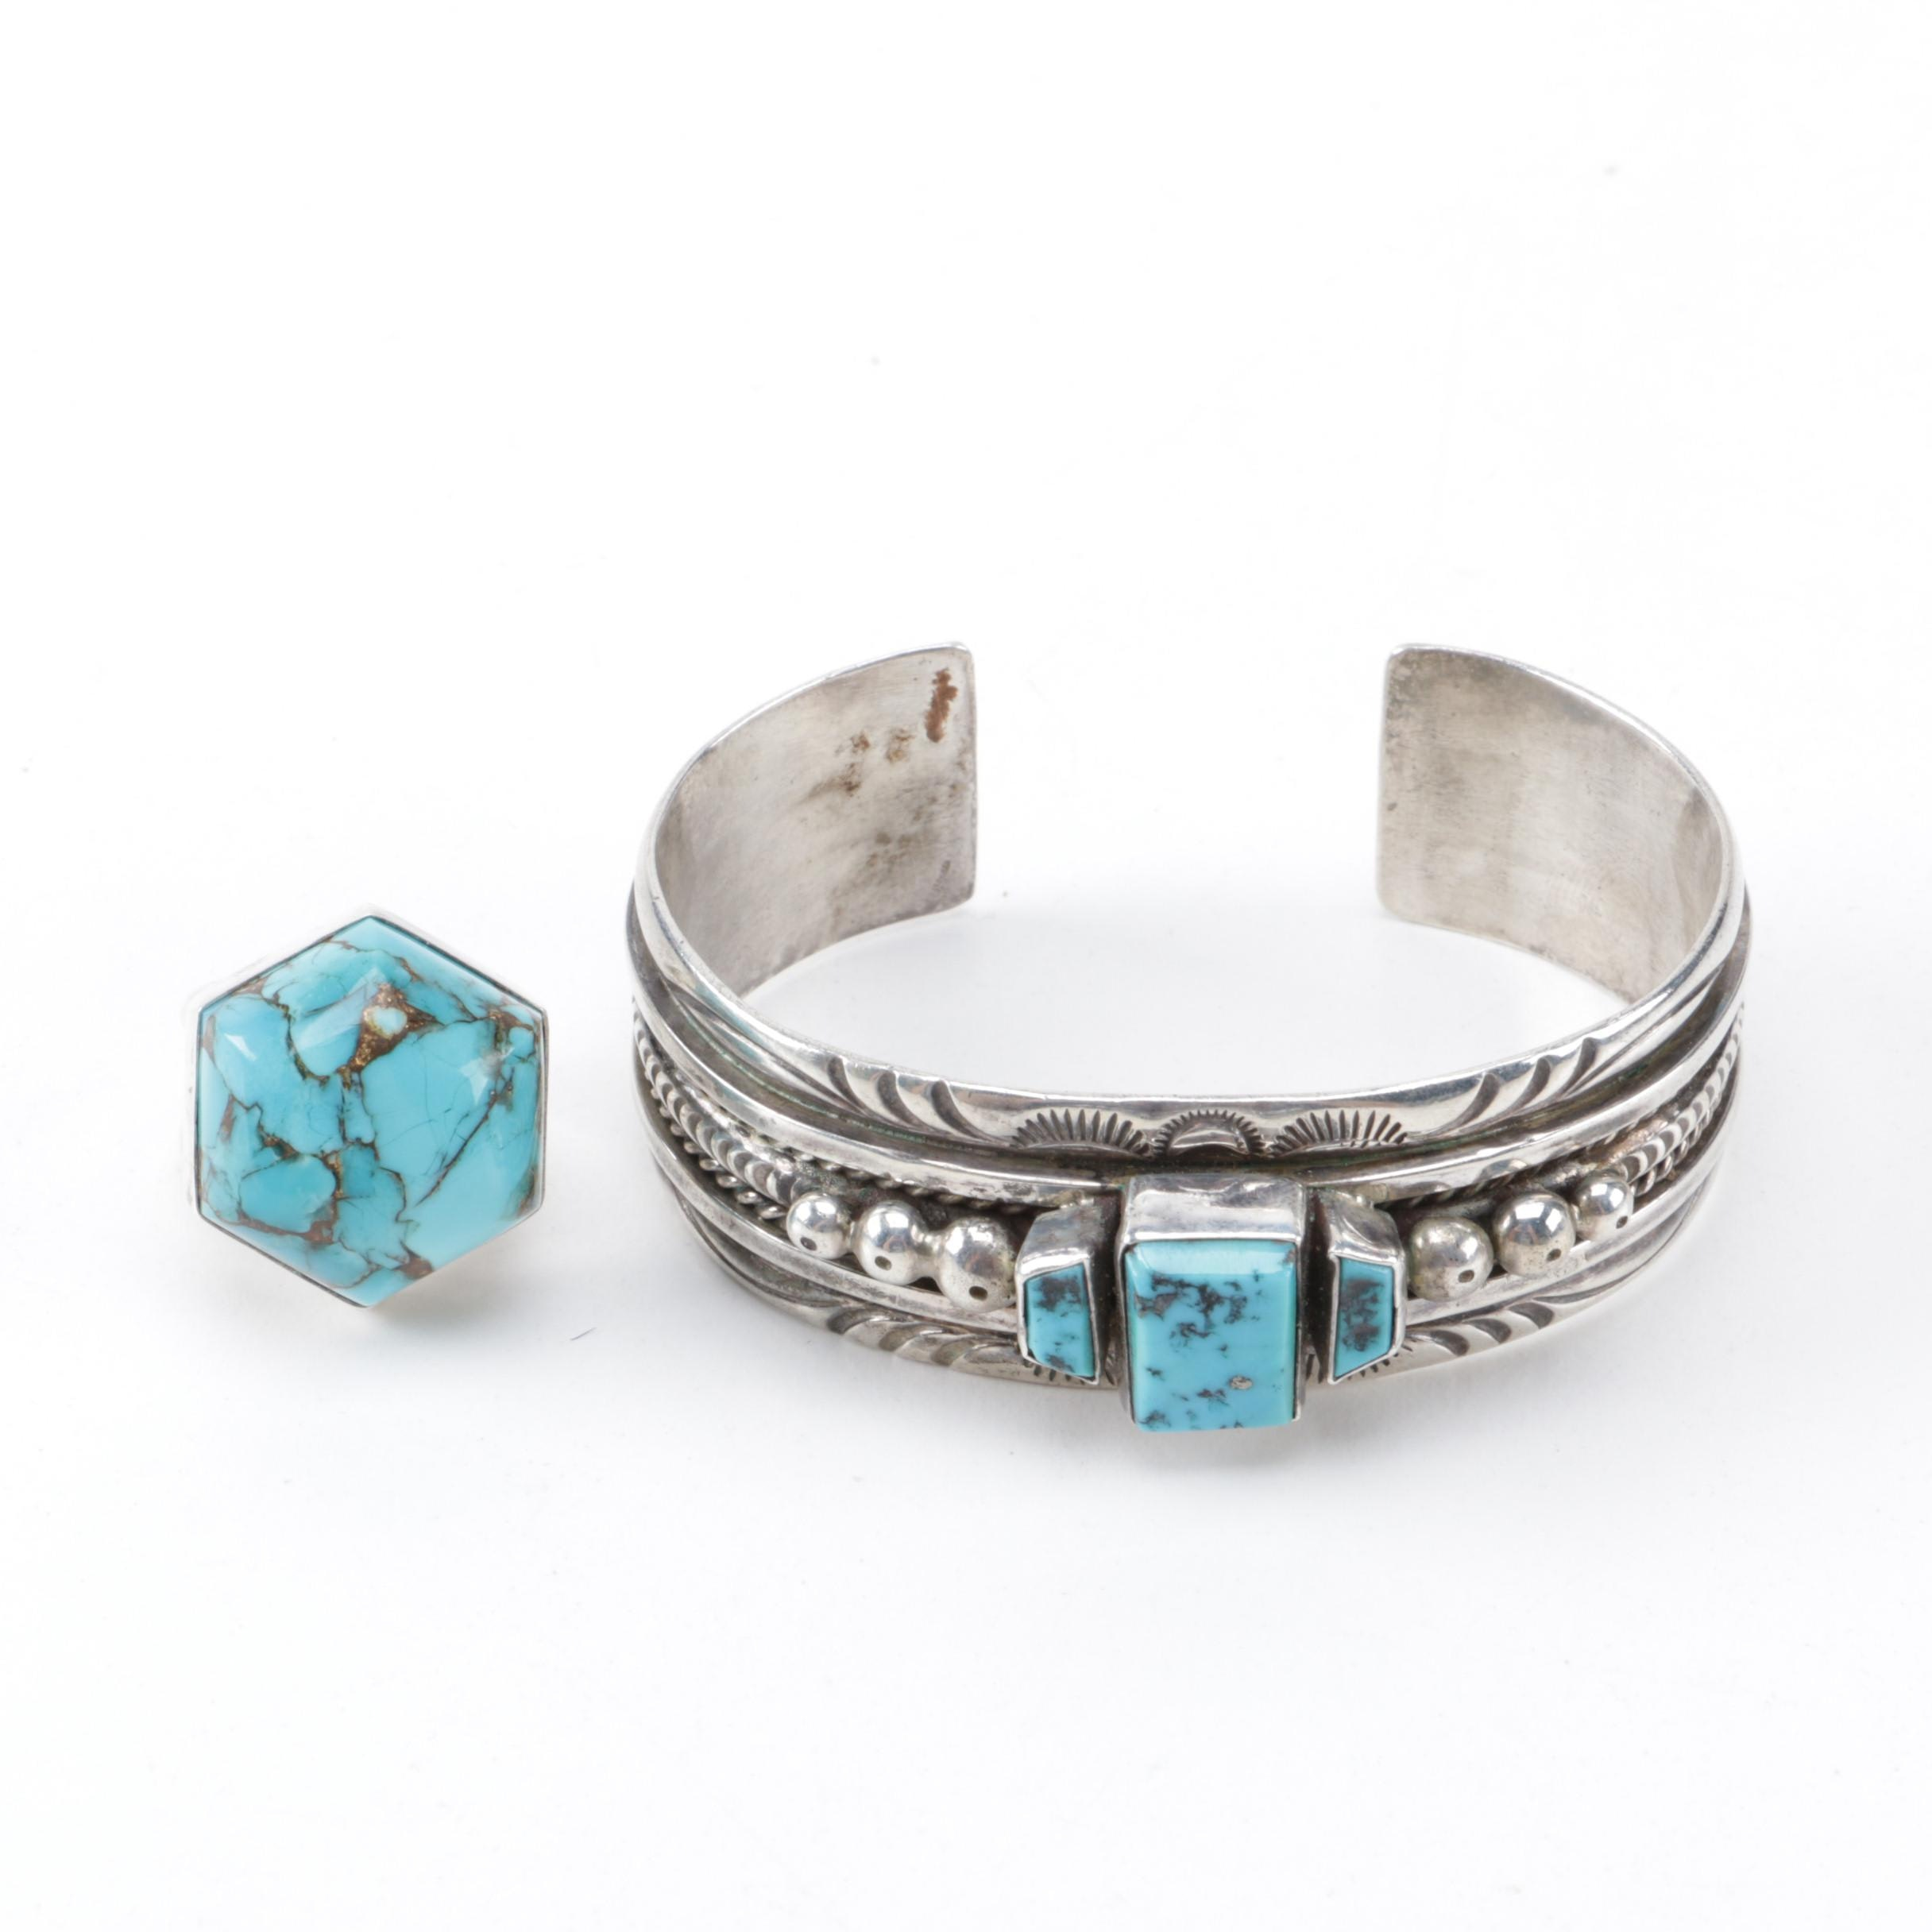 Sterling Silver Turquoise Ring and Cuff Bracelet